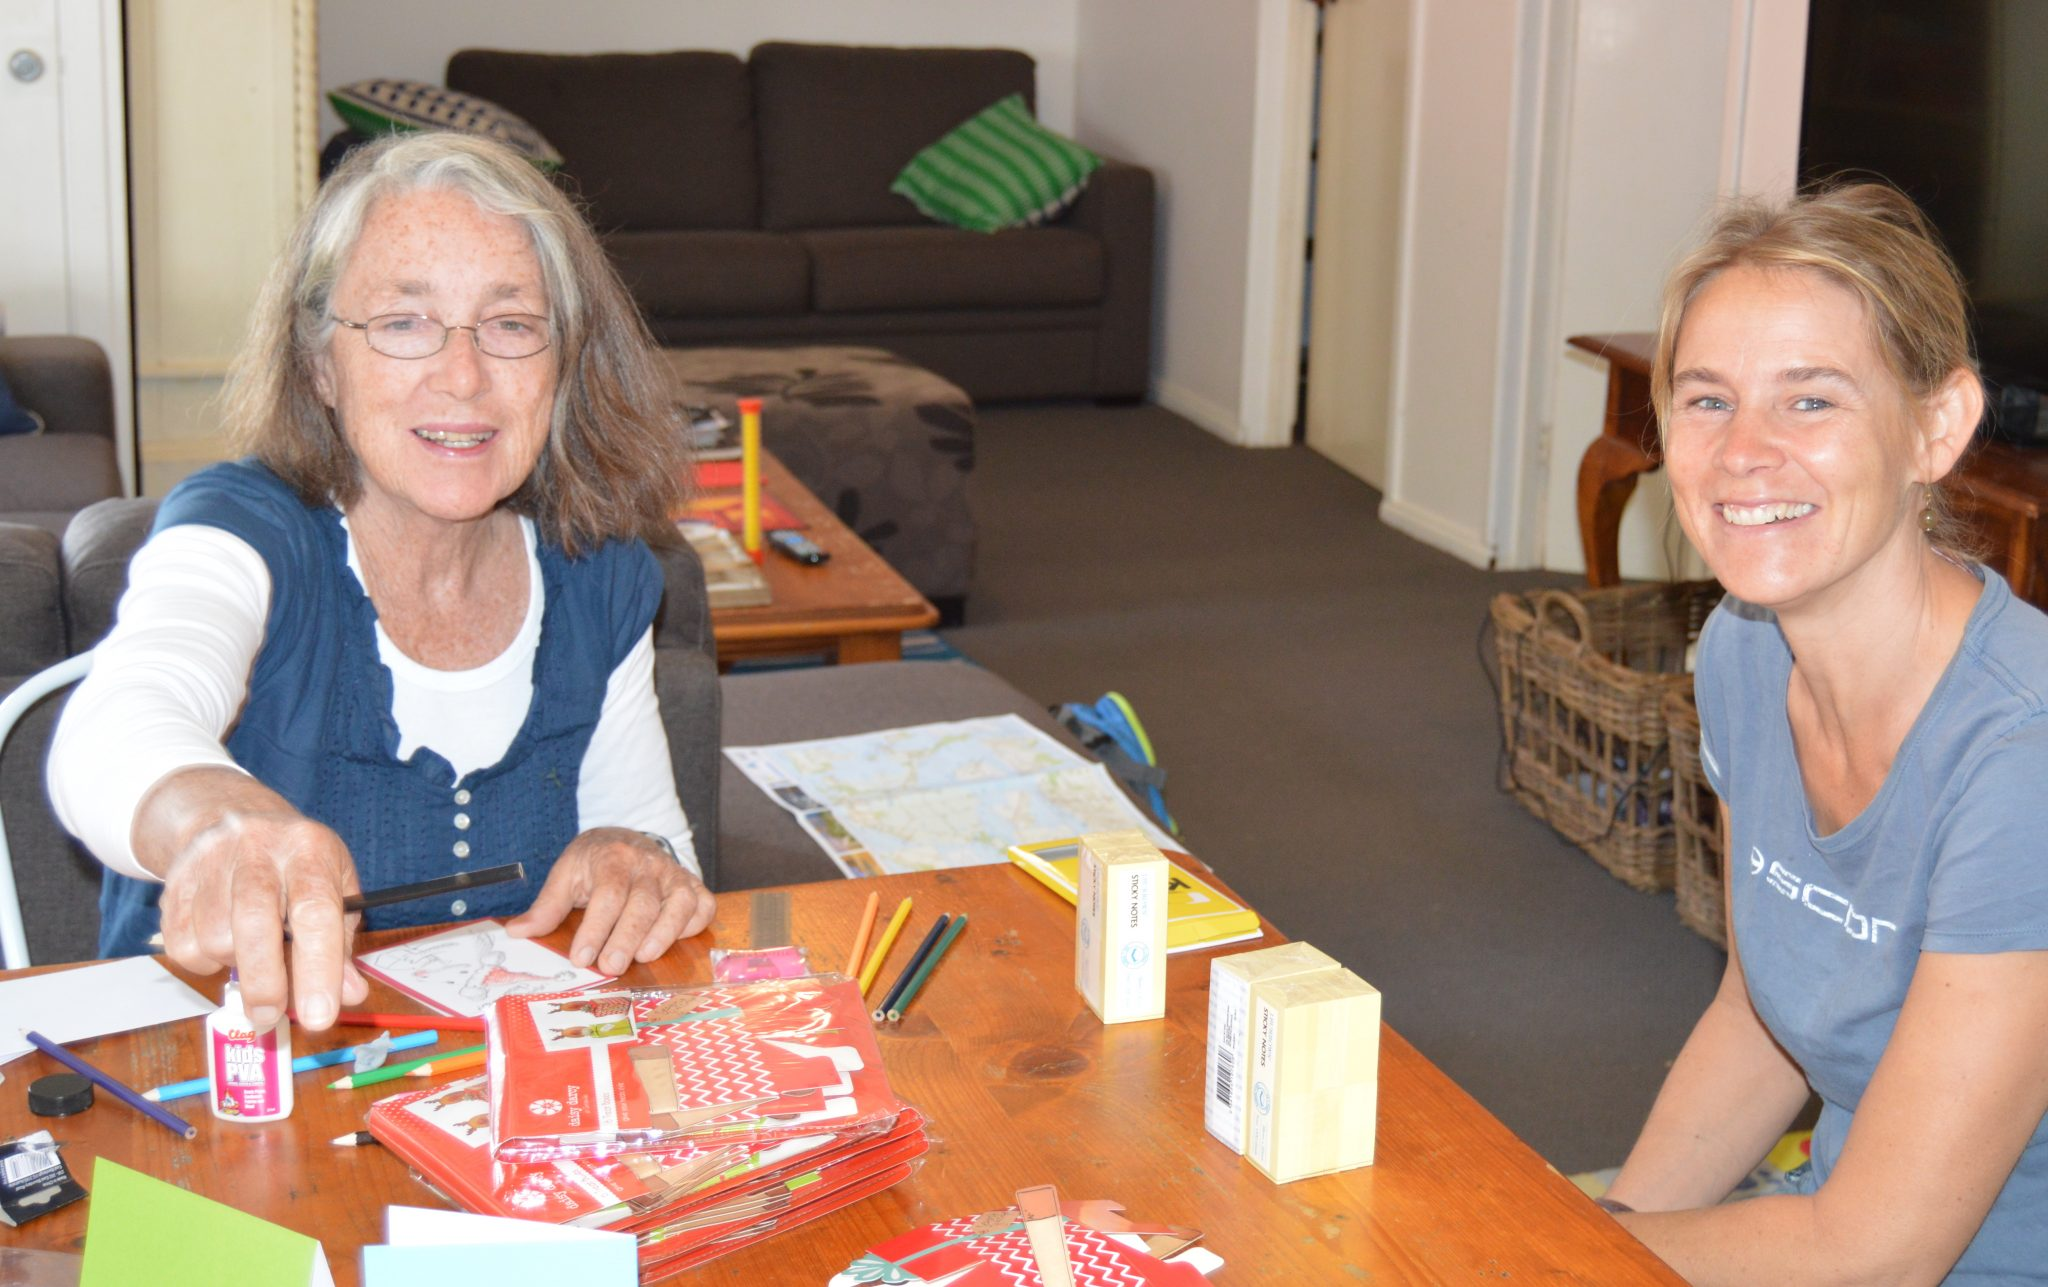 119. At the house our sailing friends rented in Phillip Island, Anne prepares to teach an art ministry event as fellow sailing missionary, Beatrice helps. Beatrice and her daughter, Gab